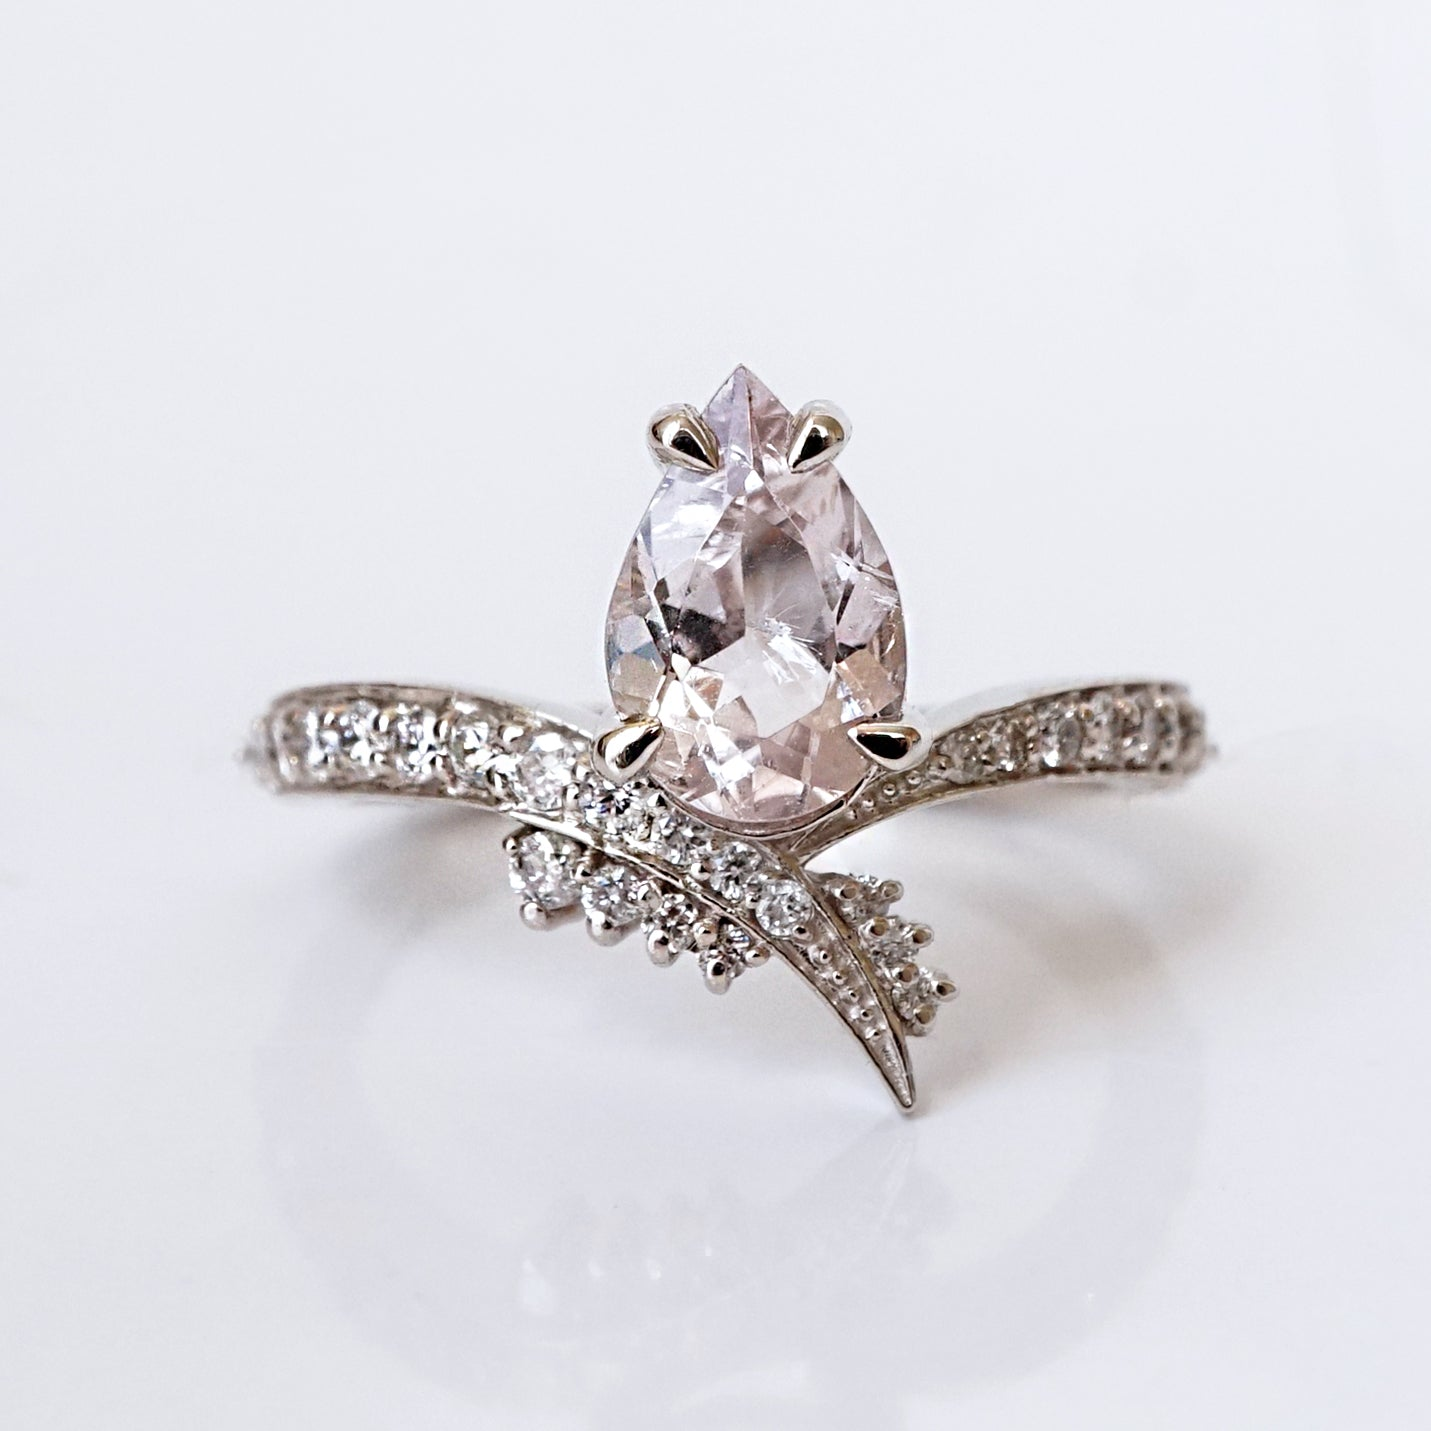 Manhattan Morganite Diamond Ring